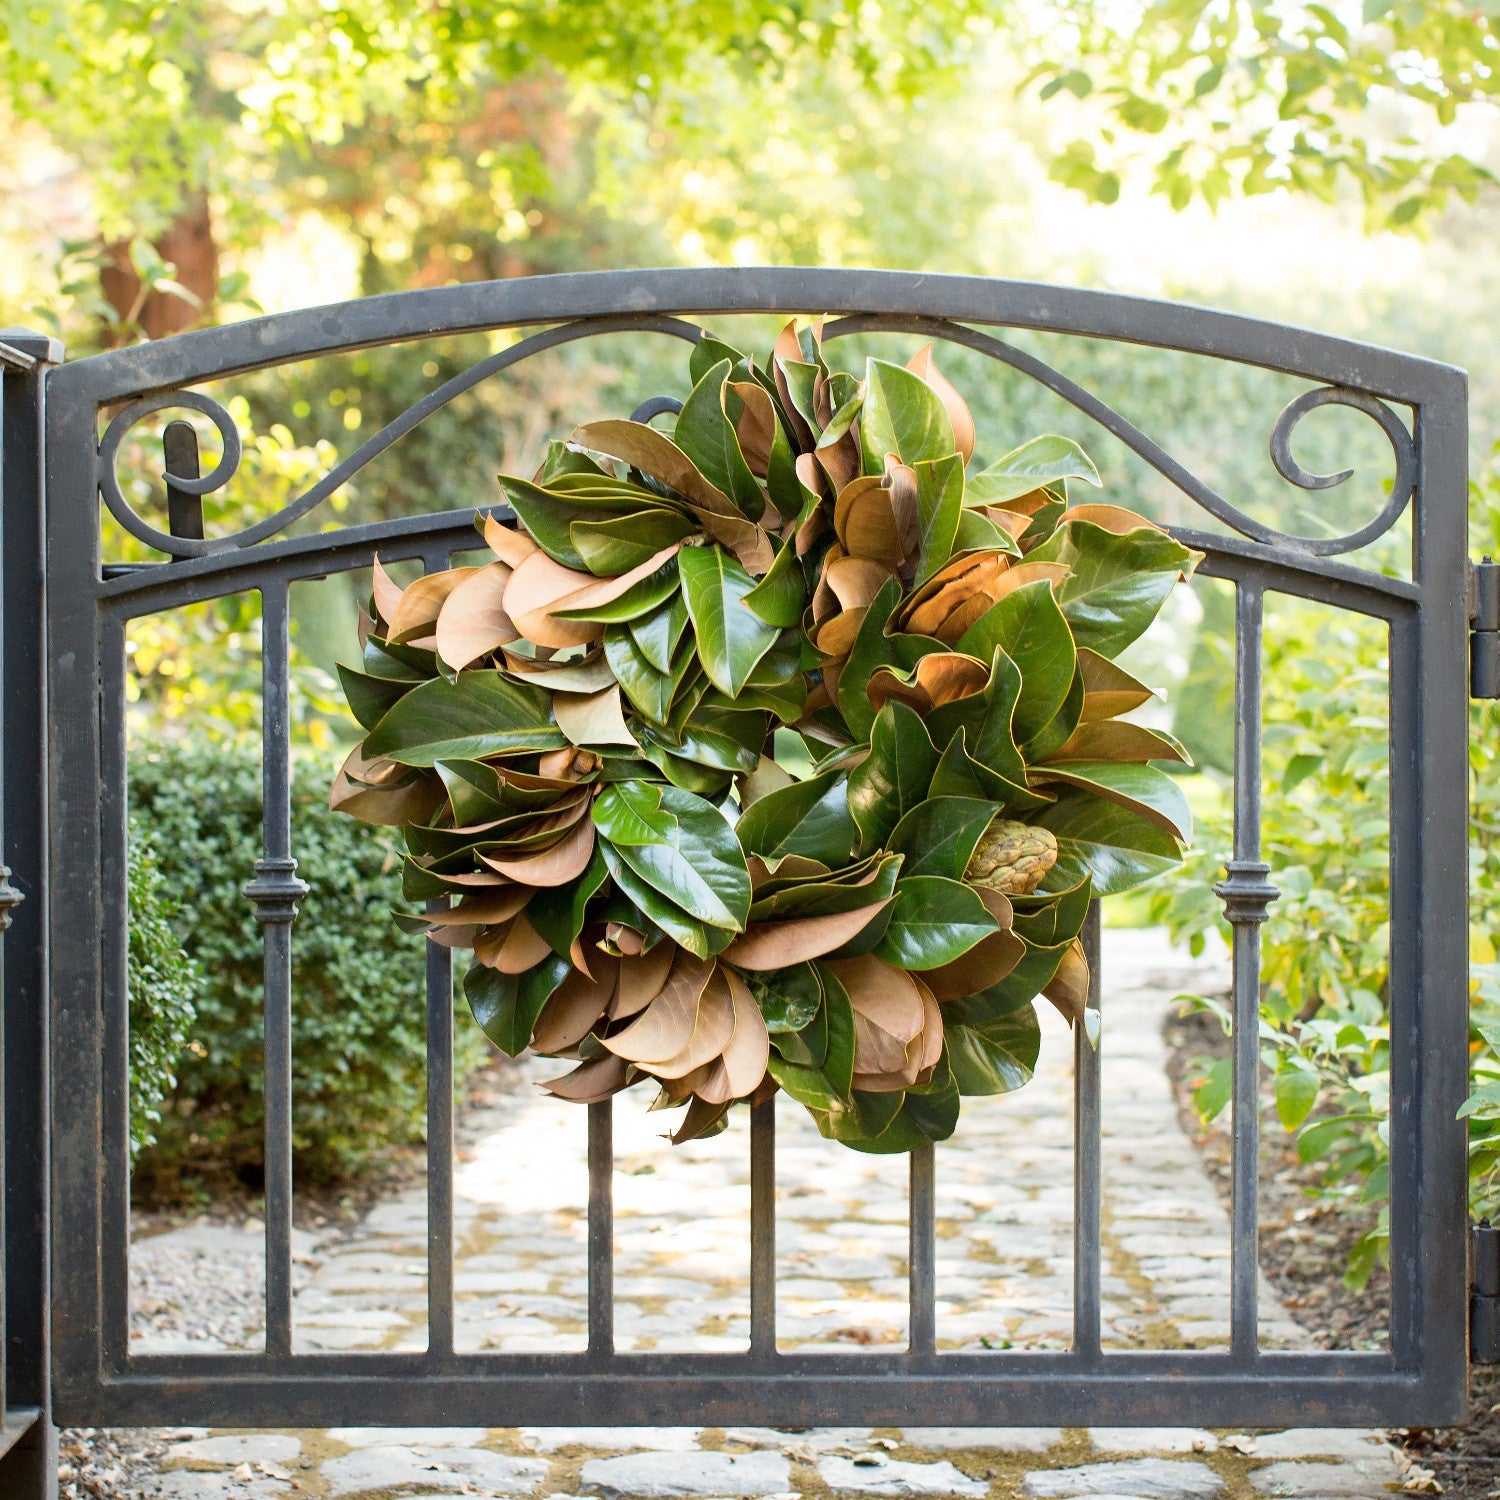 Genial Golden Magnolia Wreath | Club Botanic | Bronze And Green Magnolia Hung On  Wrought Iron Gate ...